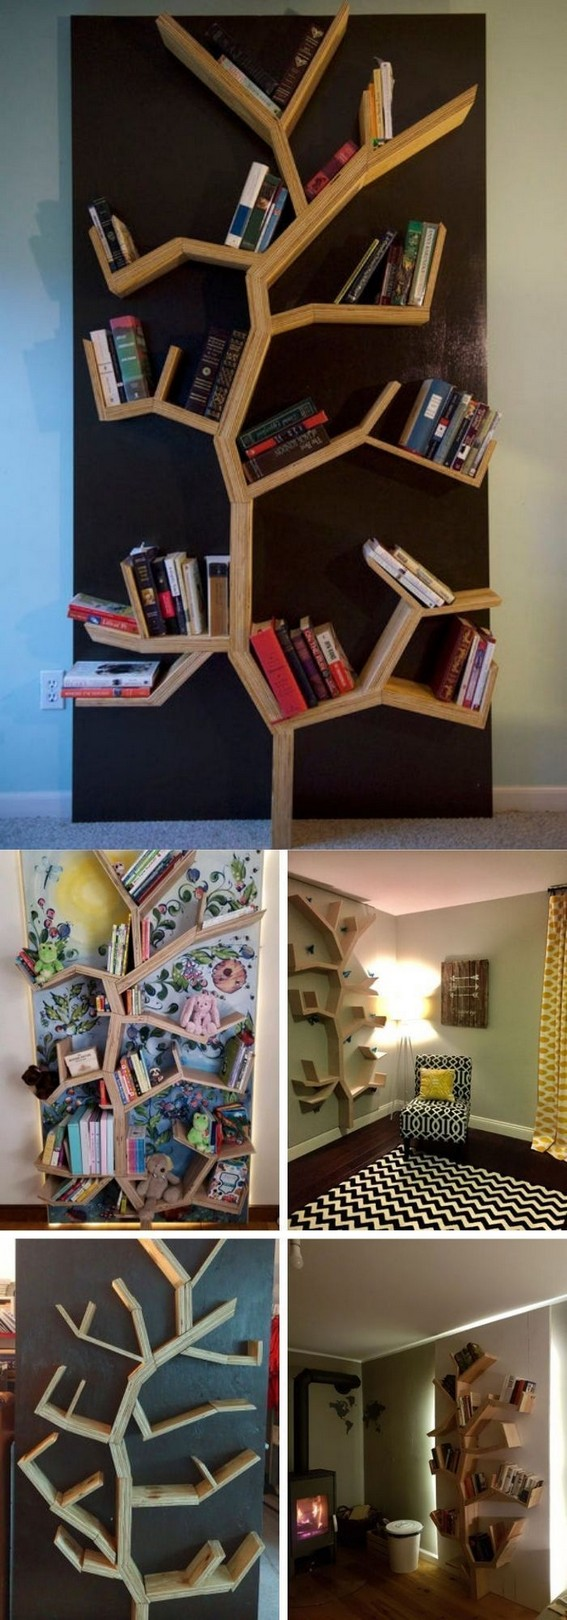 19 Unique Bookshelf Ideas For Book Lovers 20